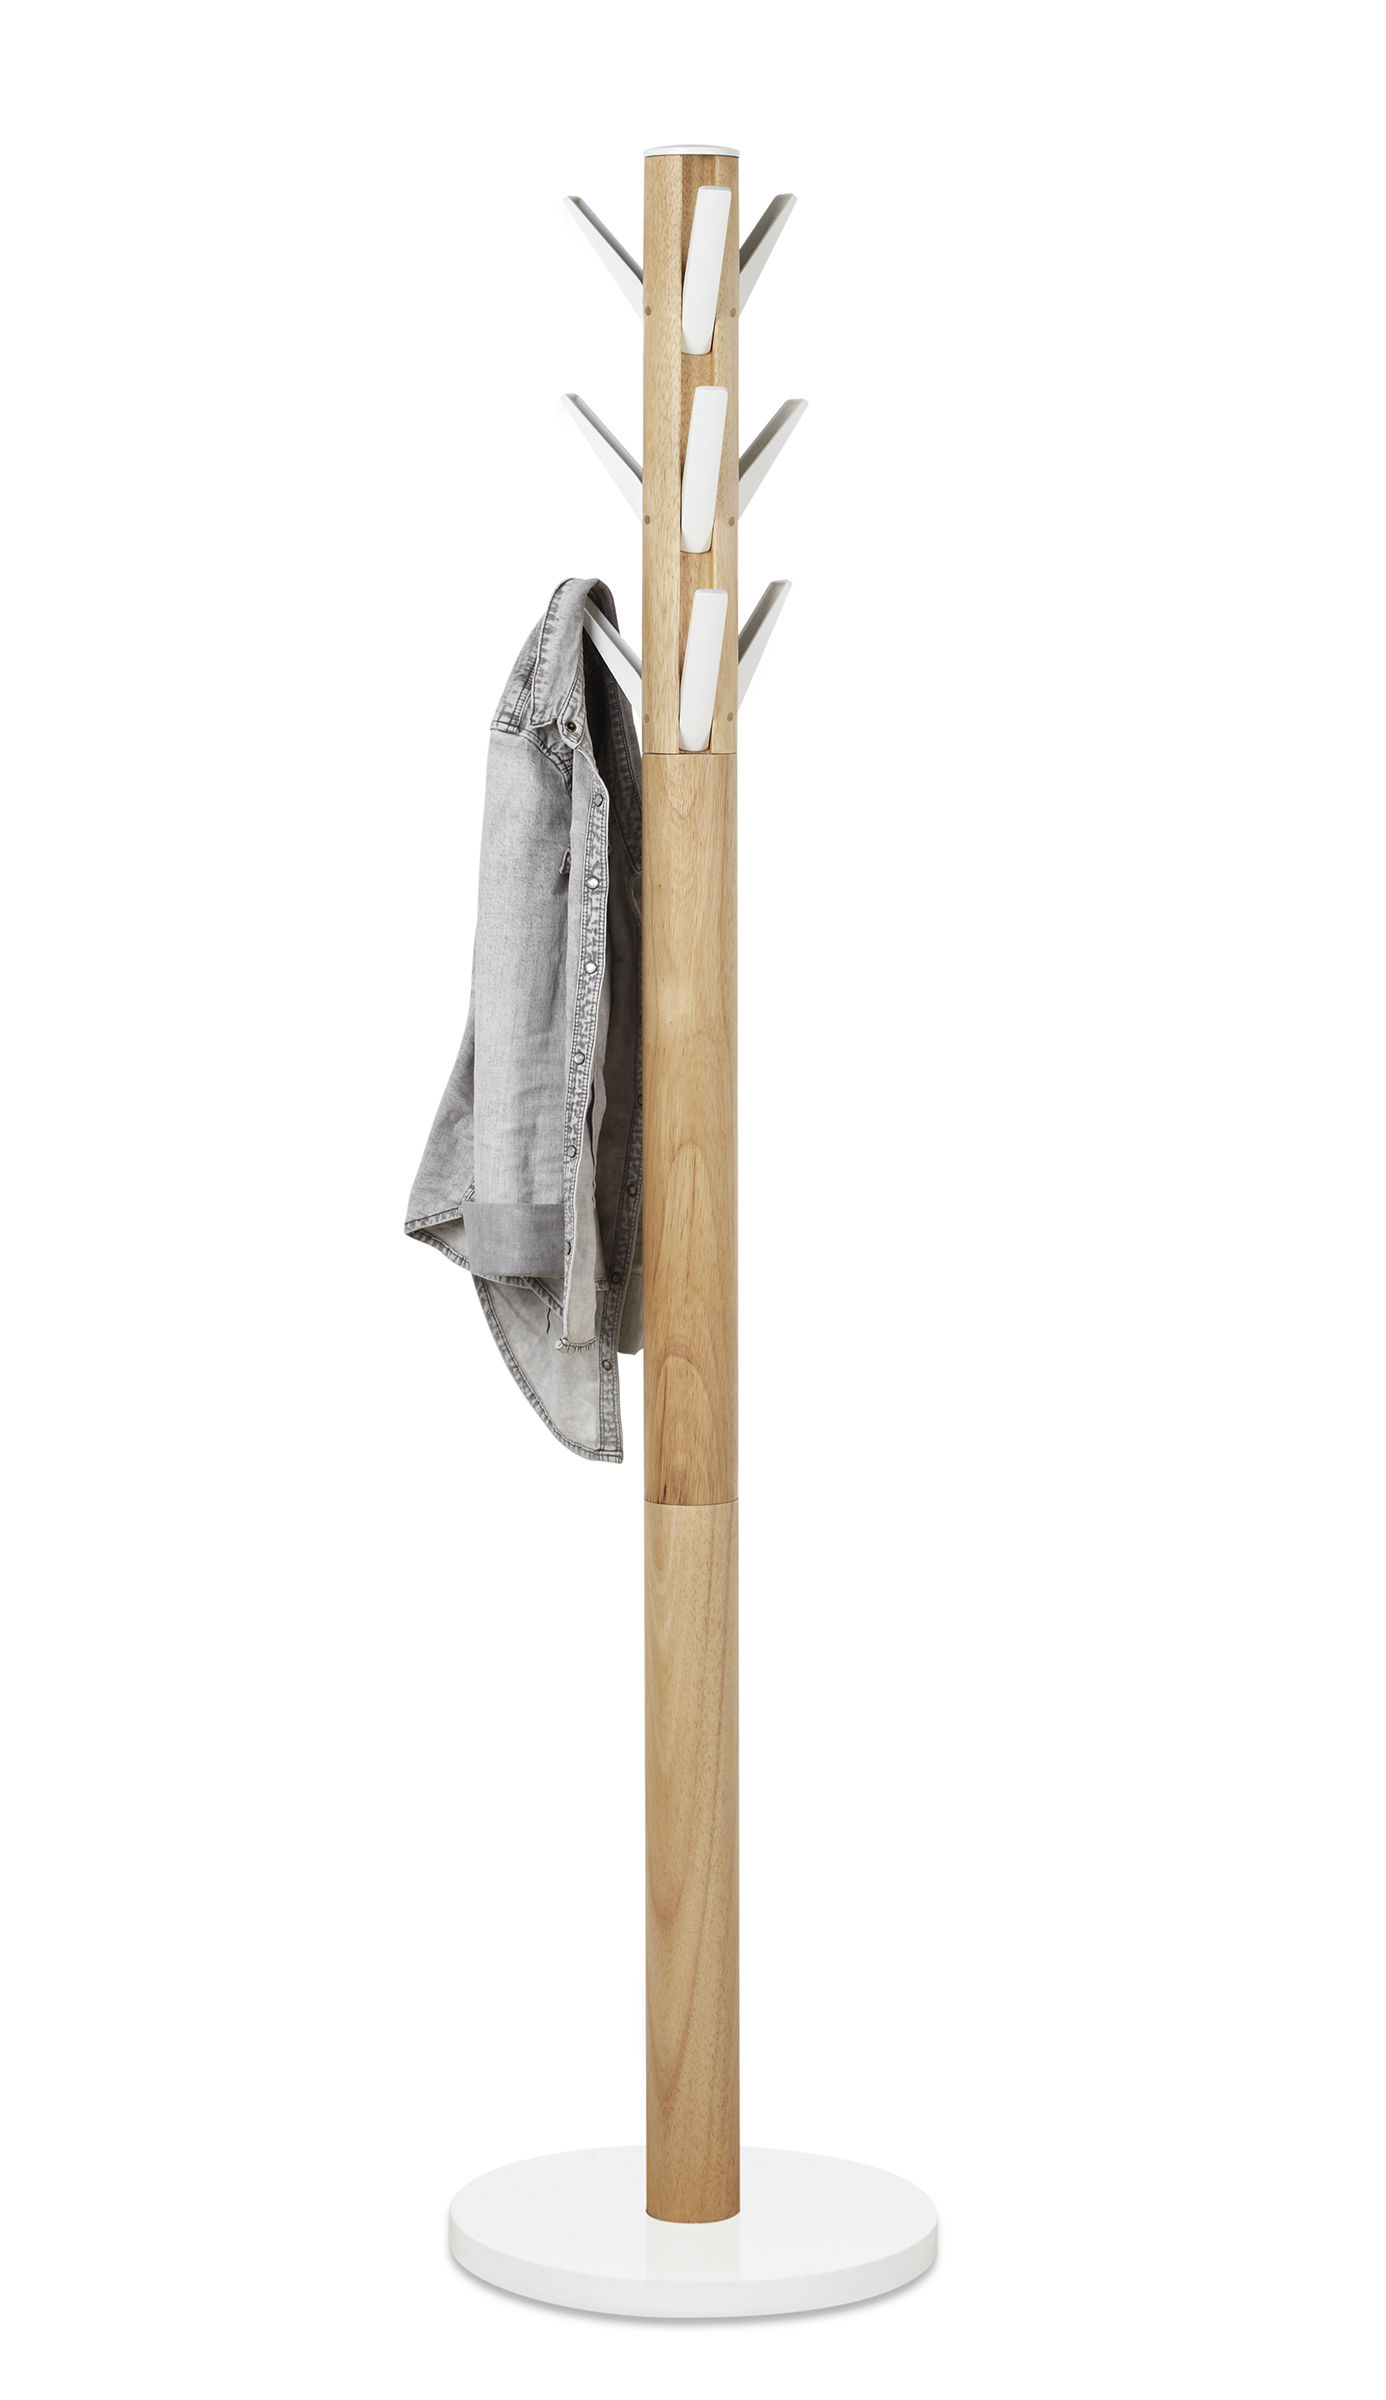 Furniture - Coat Racks & Pegs - Flapper Coat stand - / Folding hooks by Umbra - White & wood - Cast aluminium, Rubber tree wood